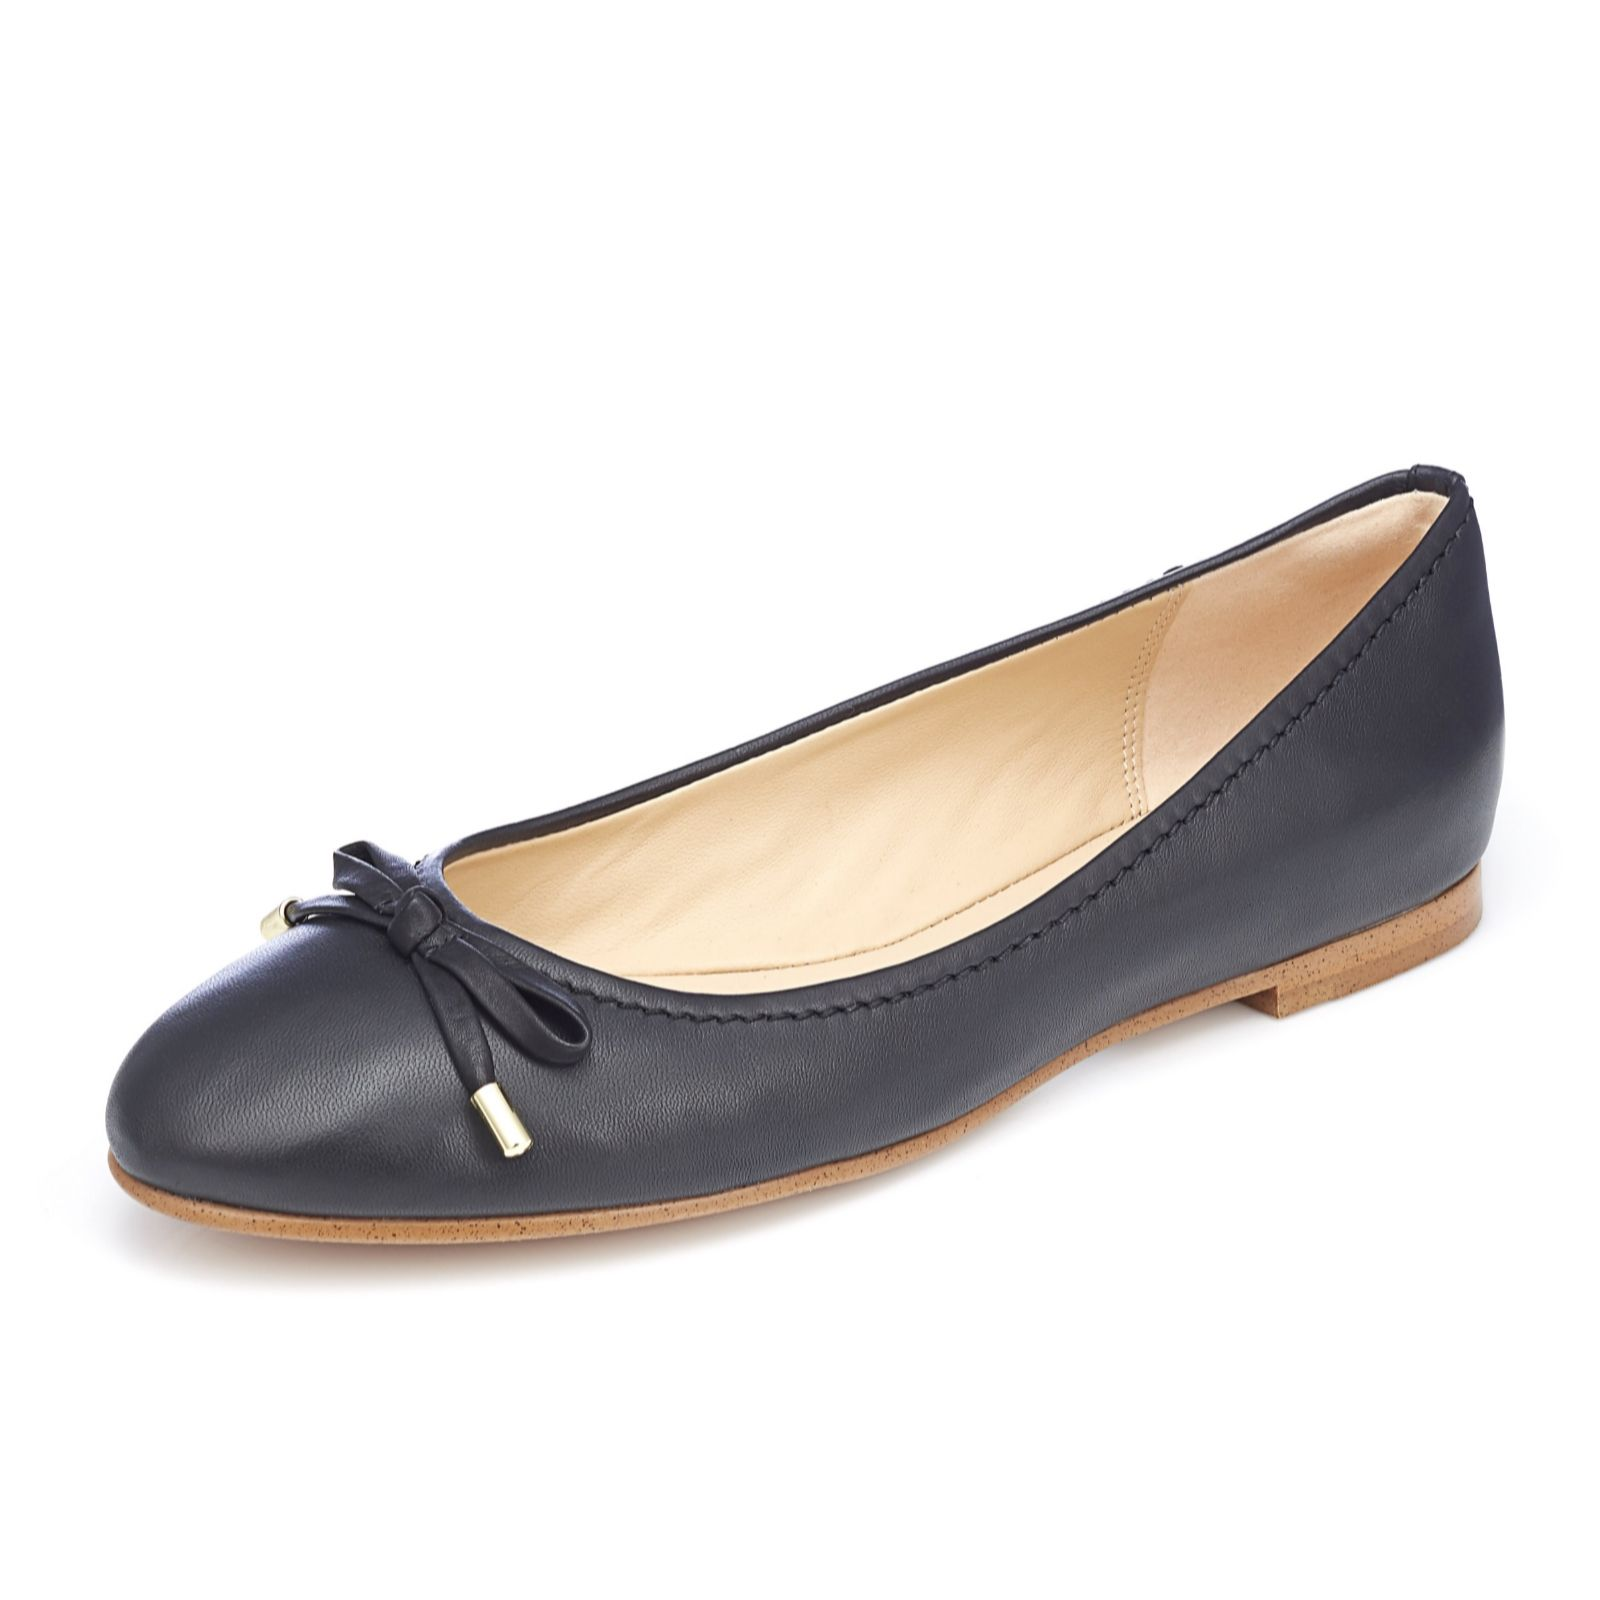 206a315614c0 Clarks Grace Lilly Ballerina with Bow Trim Standard Fit - QVC UK